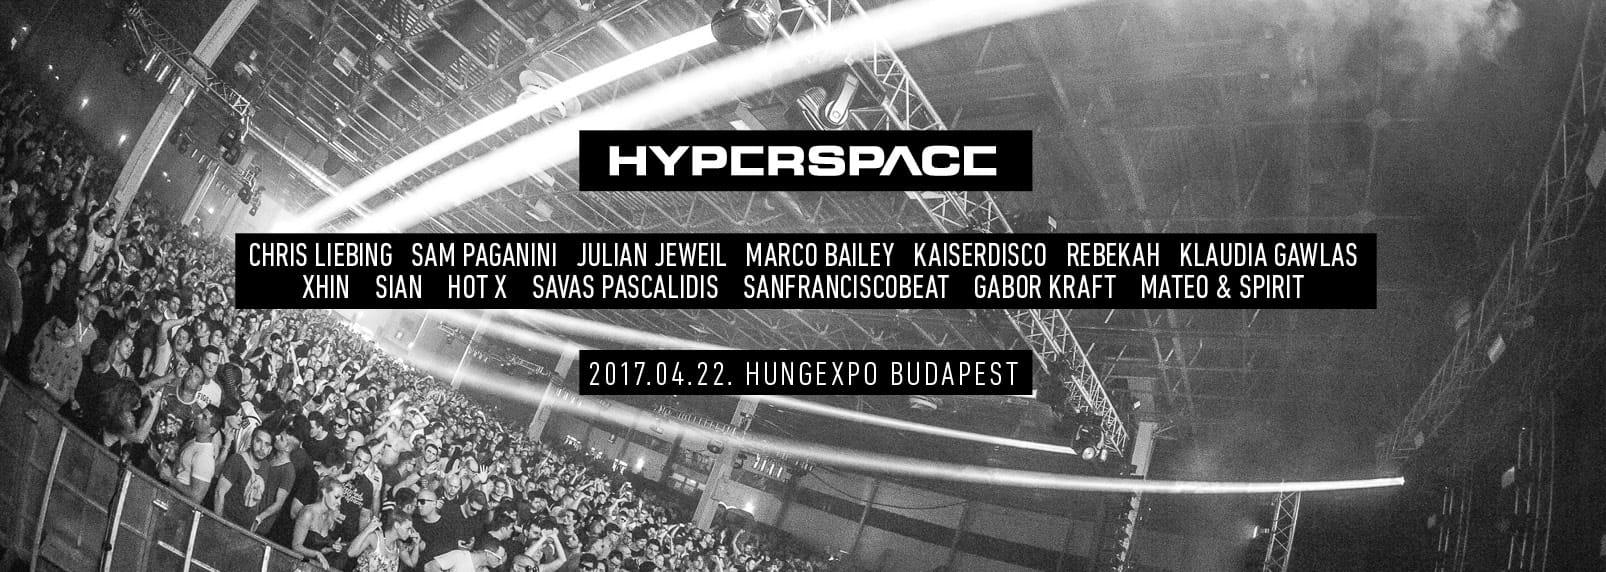 Hyperspace Techno Festival 2017, Hungexpo, 22 April